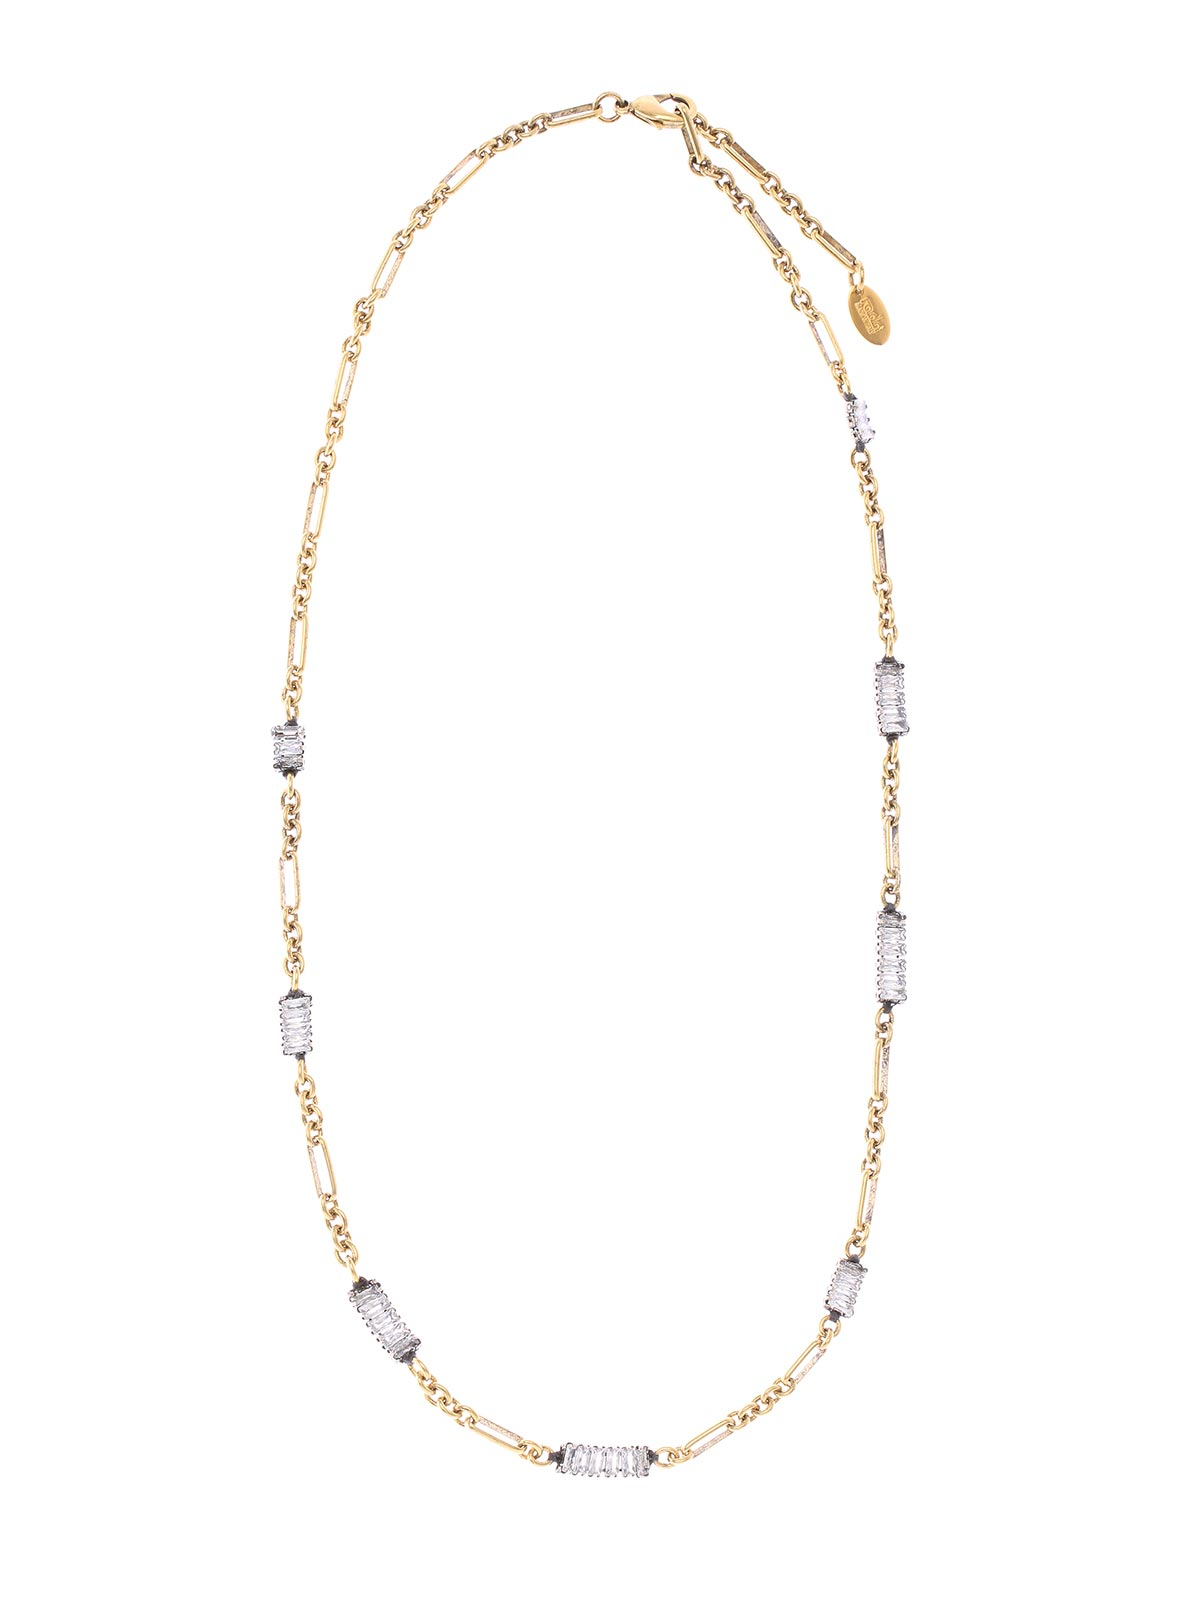 Brass chain necklace with crystals